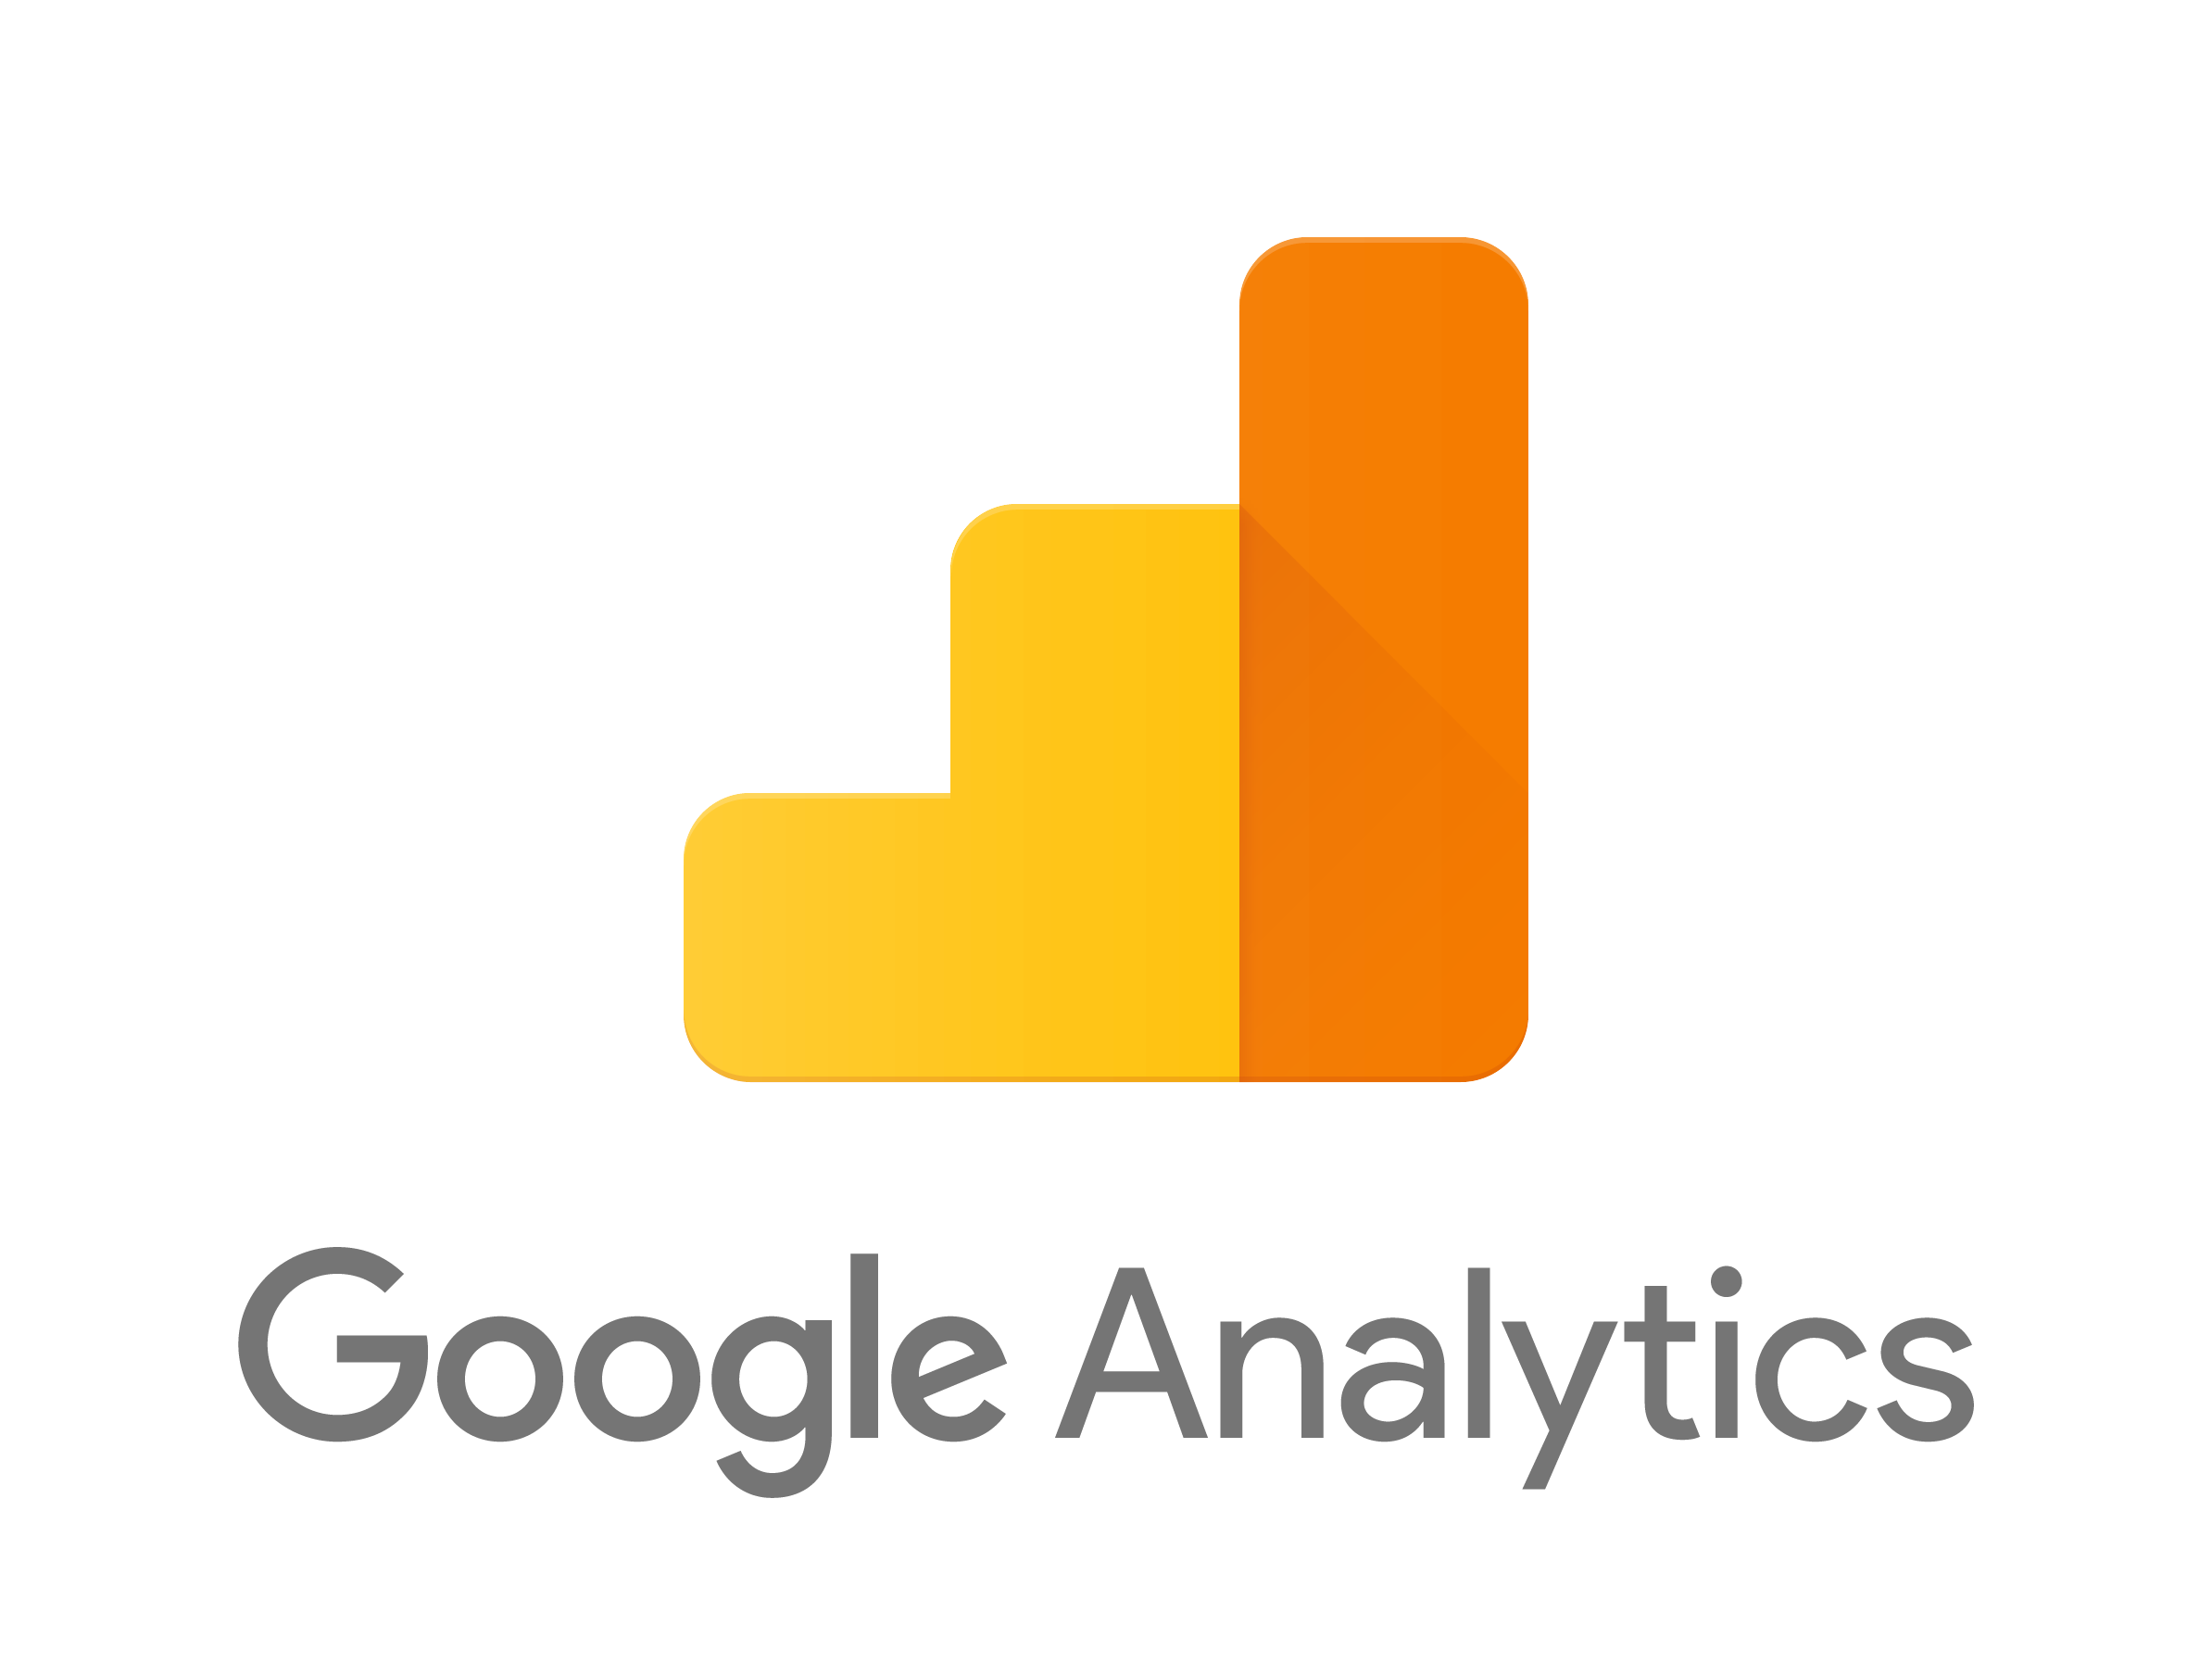 How to Add Read-only Guest Access to Google Analytics